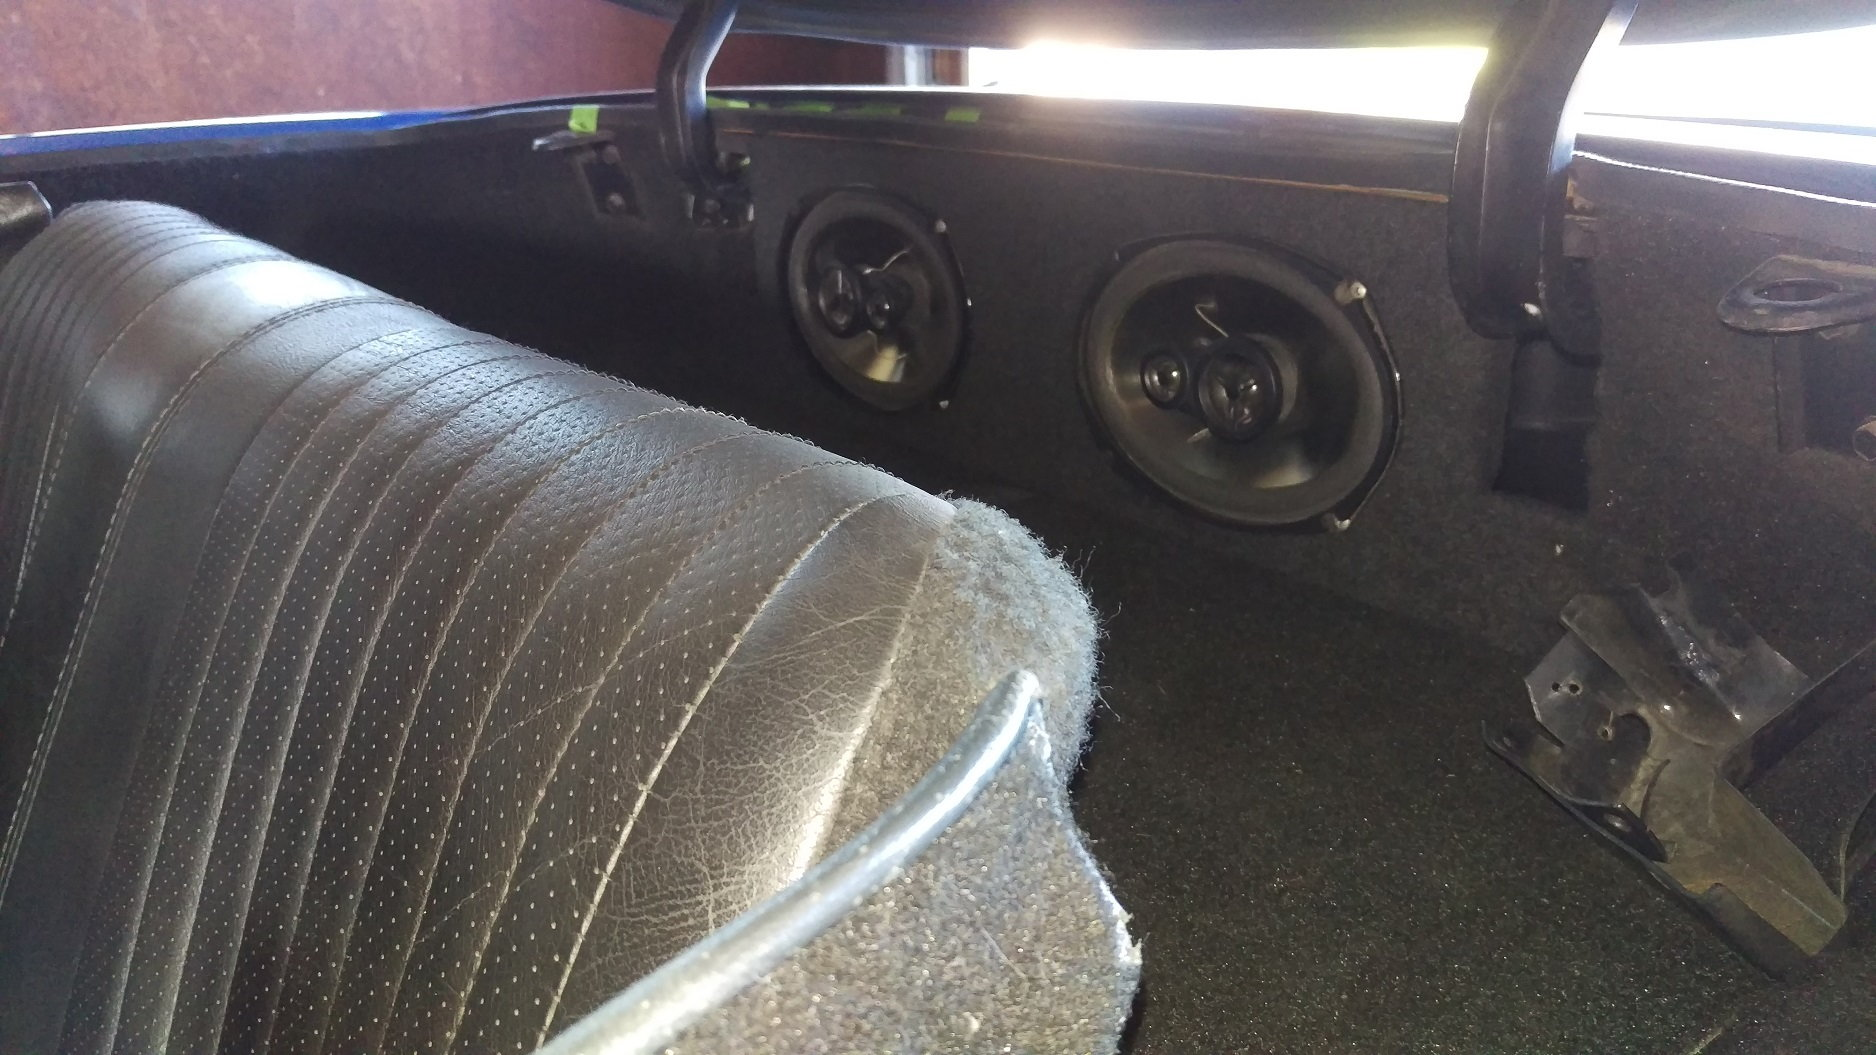 hight resolution of still have speakers in the rear panels just wanted a grilless look cause i like the look of perforated leather matches the door panels seats